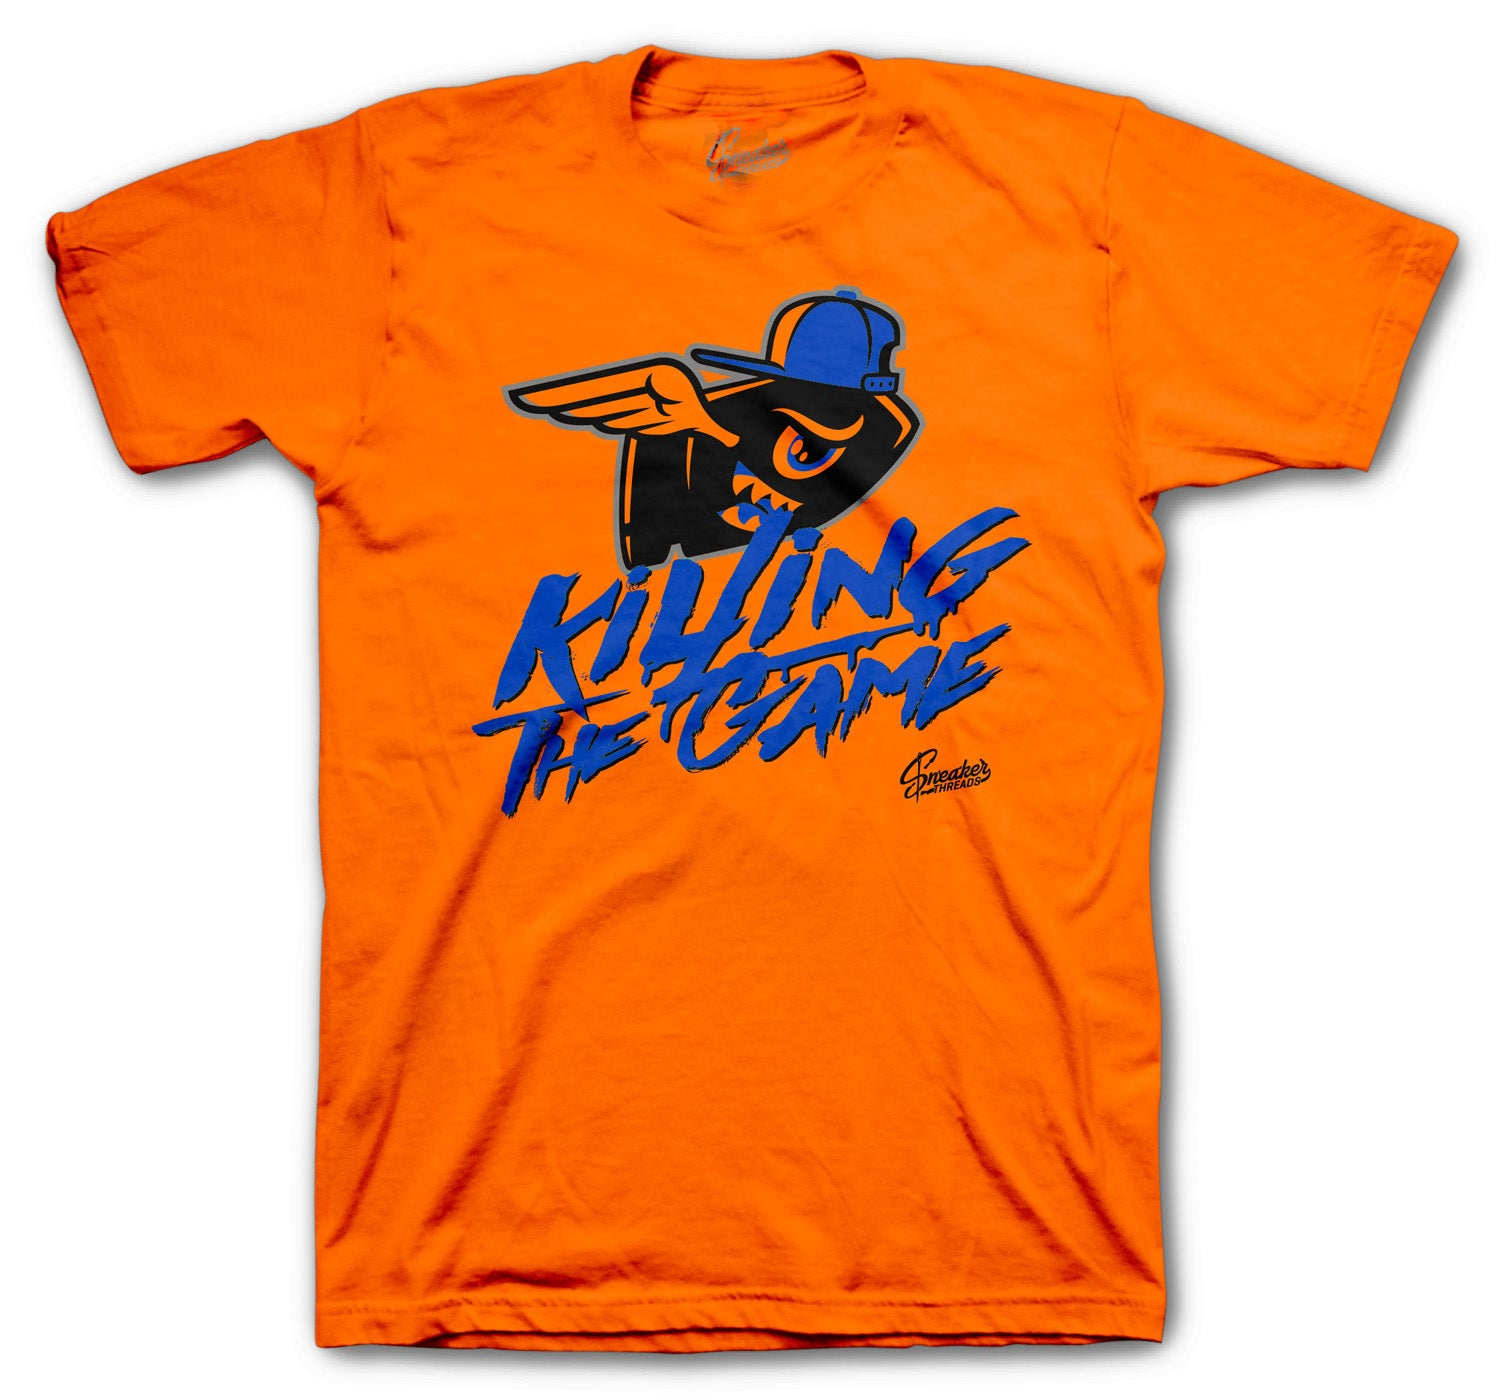 collection of tees designed to match the retro Jordan 3 knicks sneaker collection